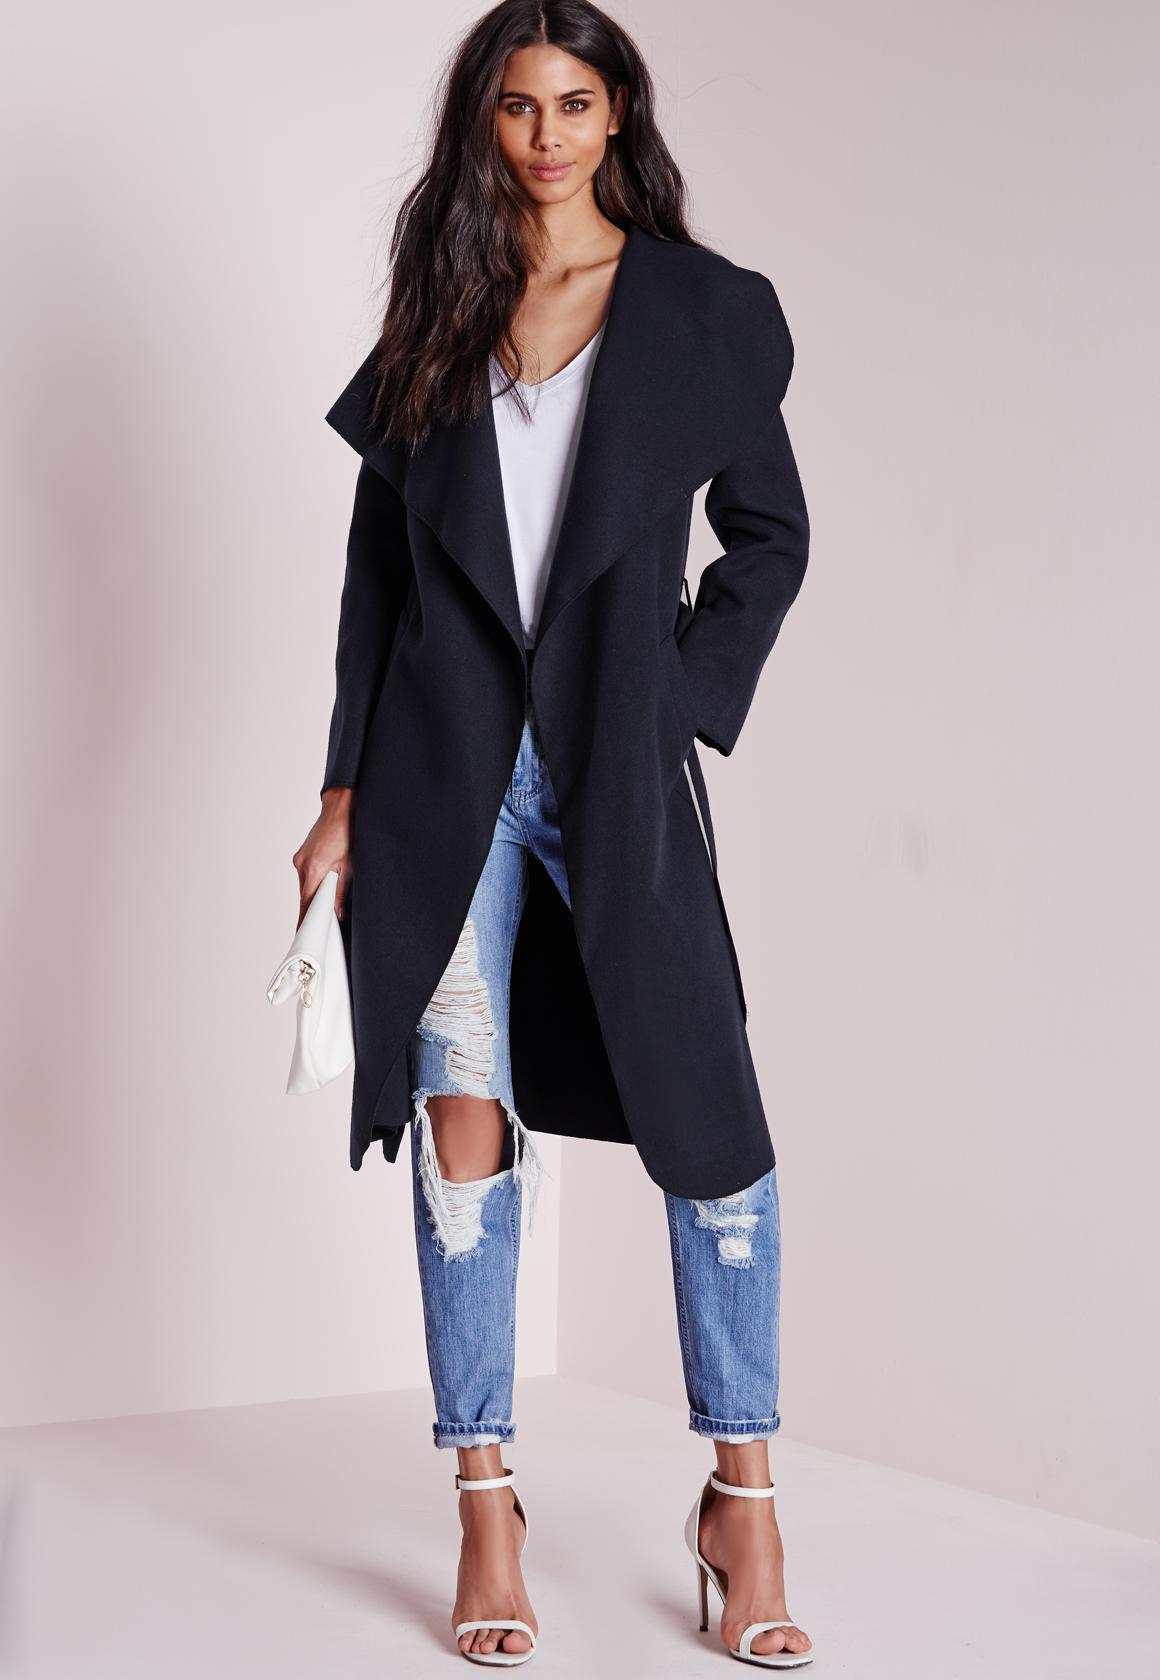 Waterfall Wool Coat Long Length Navy - Coats and Jackets ...